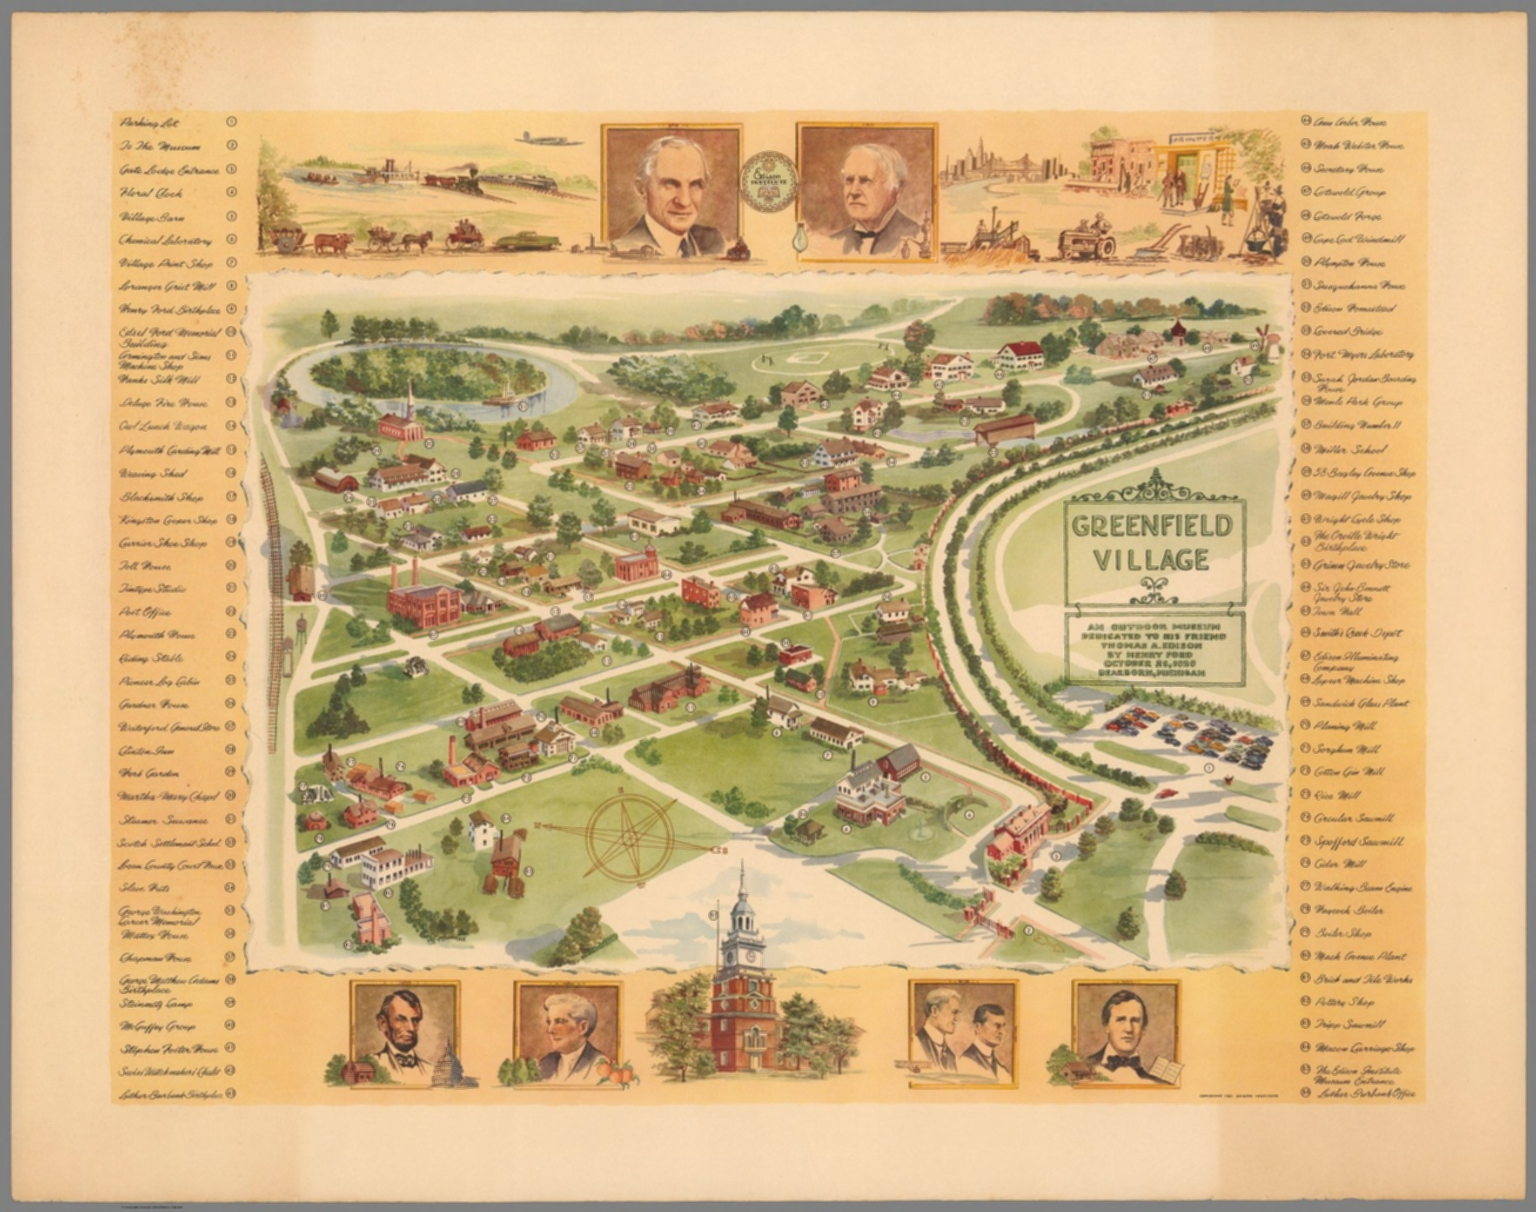 Greenfield Village Map Greenfield Village : an outdoor museum   David Rumsey Historical  Greenfield Village Map